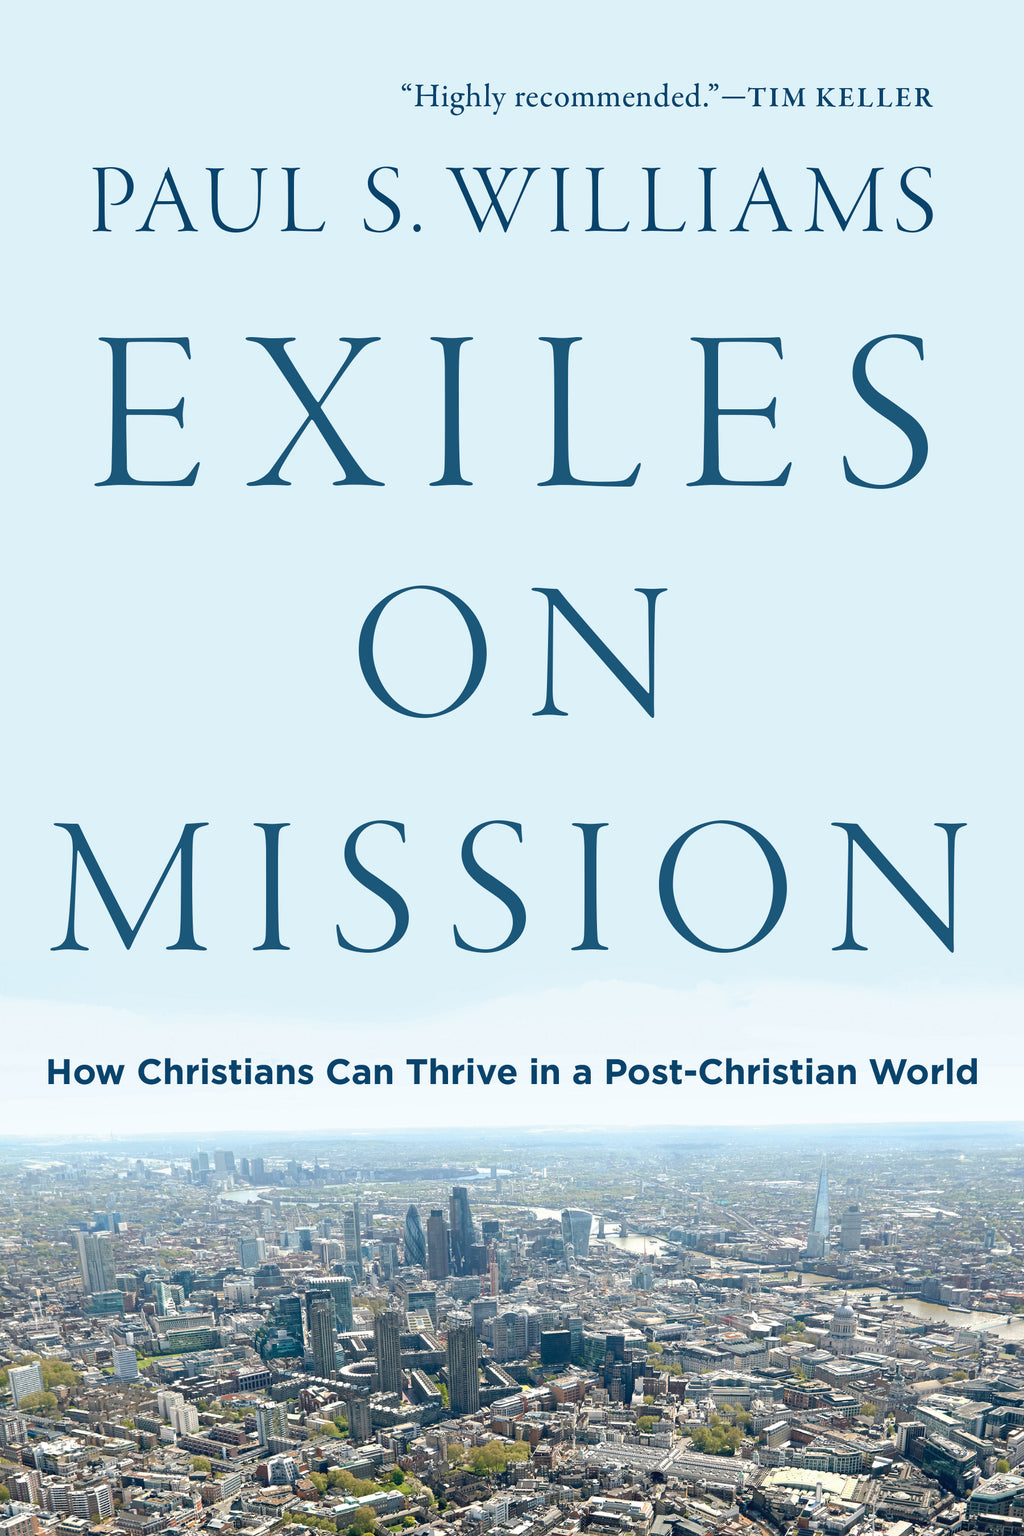 Exiles on Mission: How Christians Can Thrive in a Post-Christian World - Williams, Paul S - 9781587434358